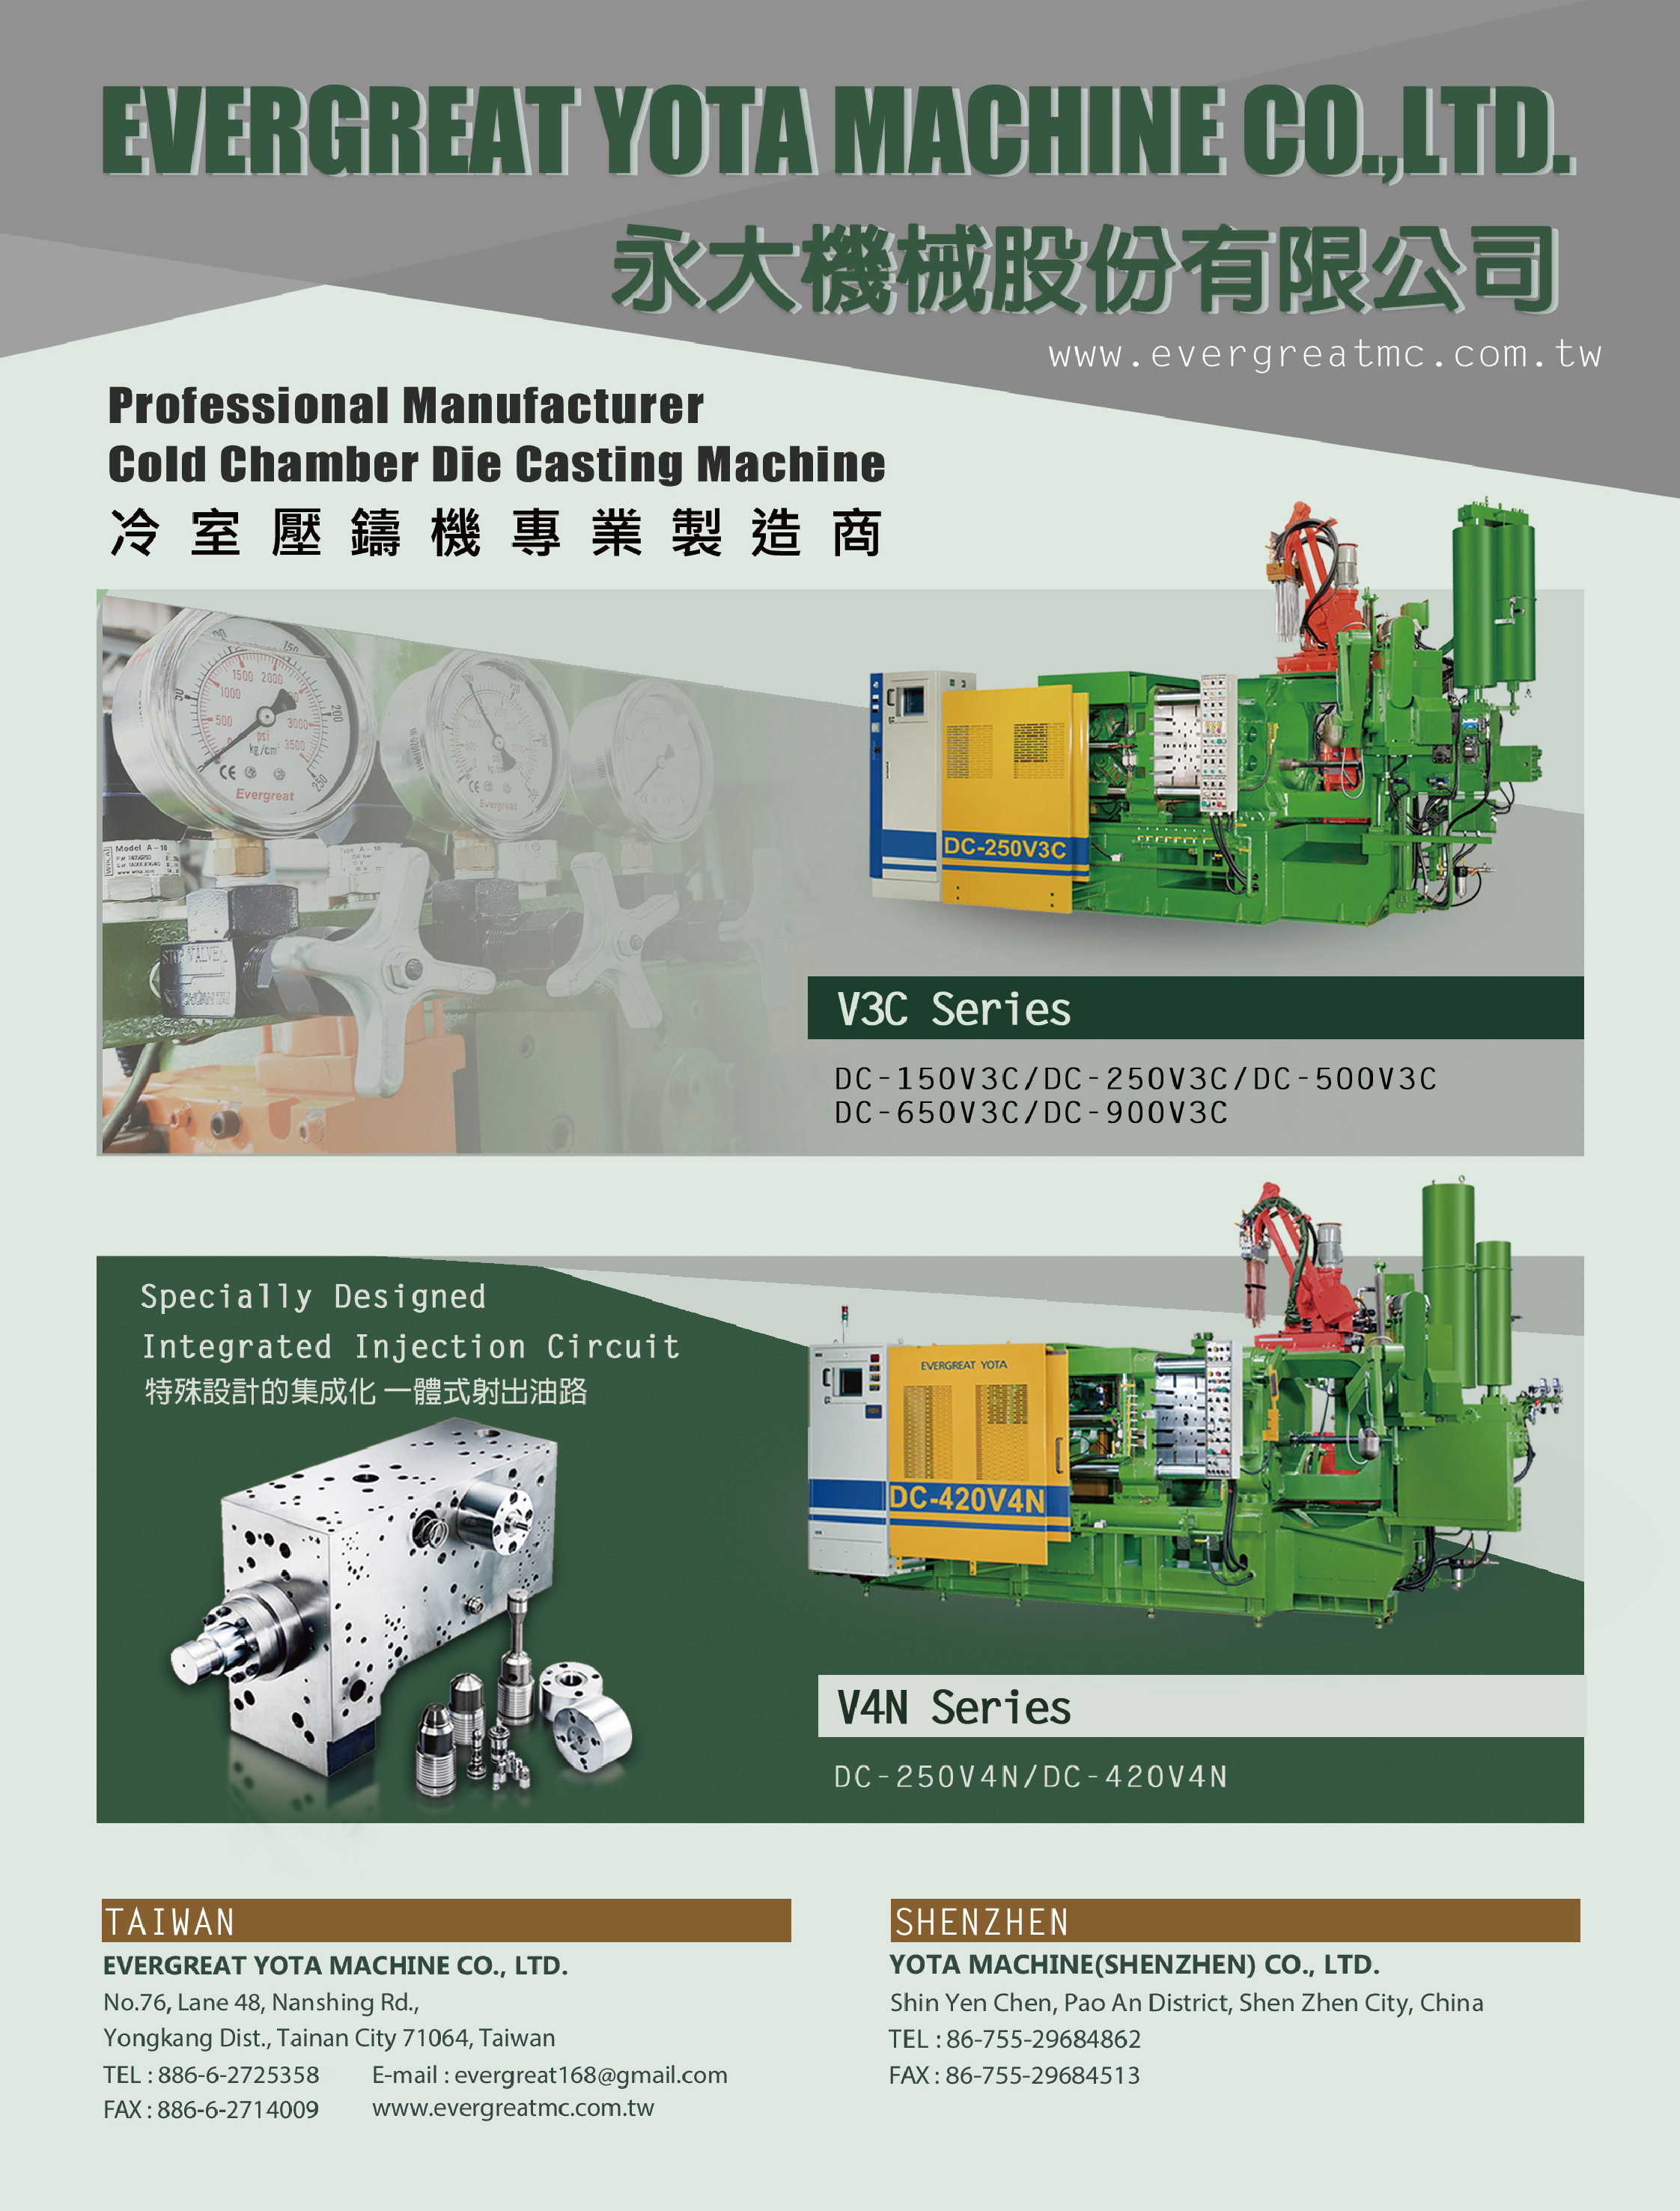 EVERGREAT MACHINERY CO., LTD.